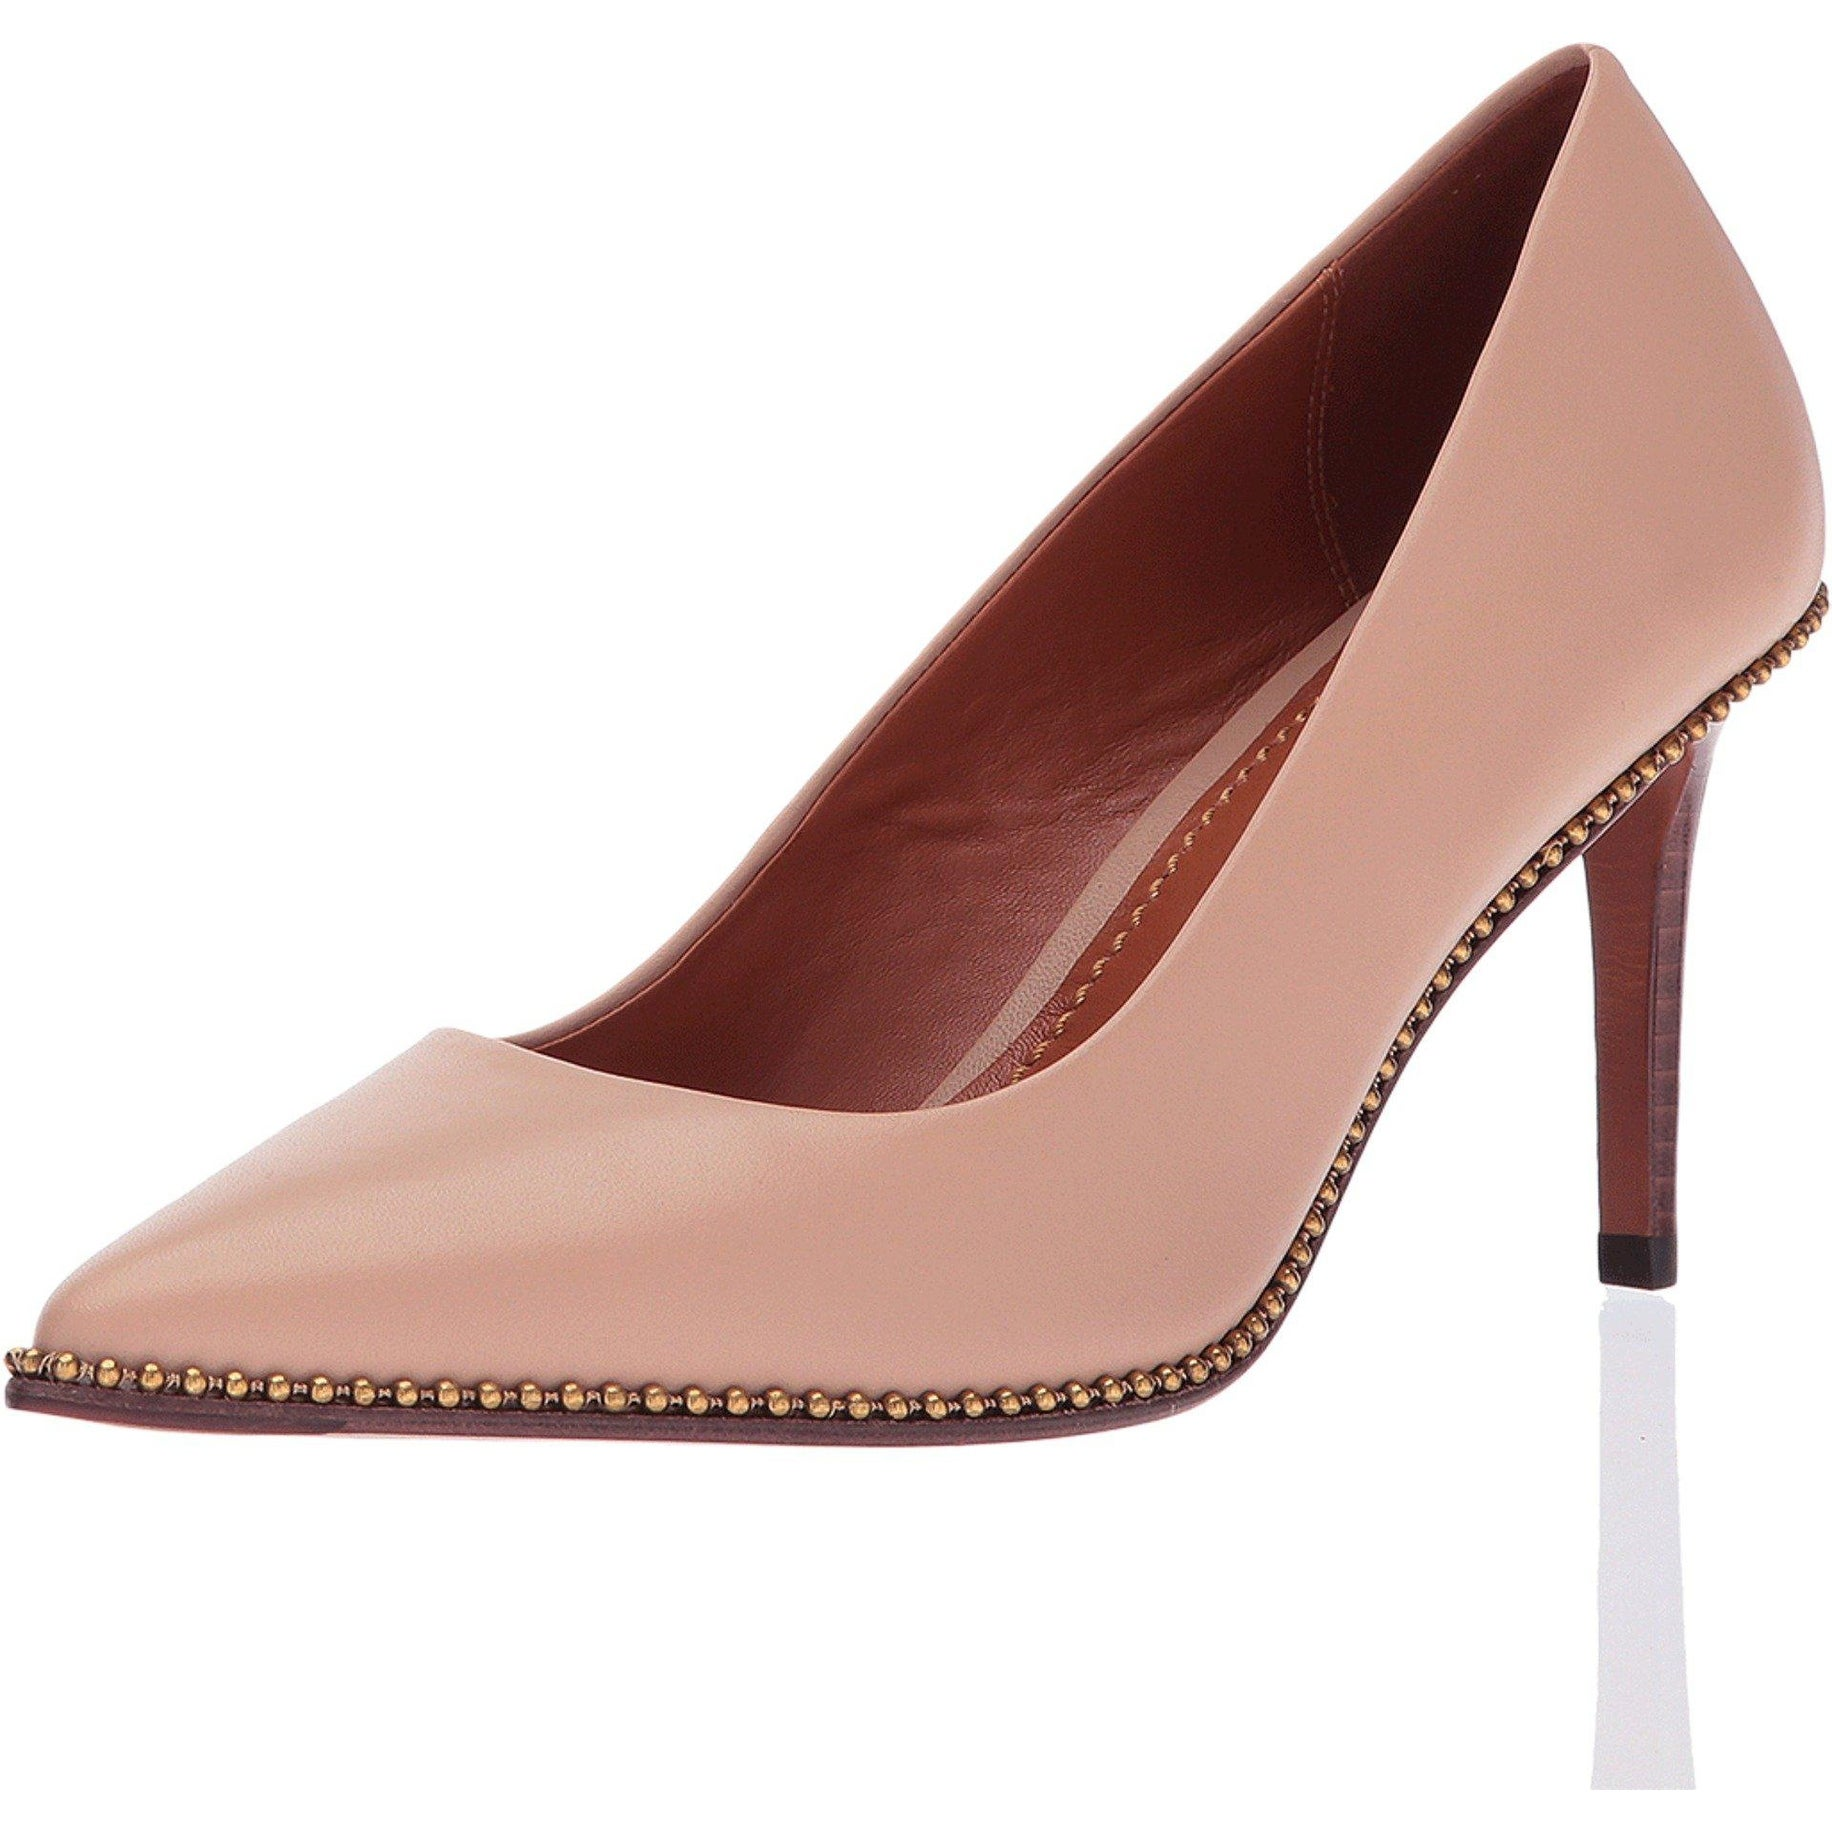 416a671571b8 Shop Coach Womens Beadchain pump Leather Pointed Toe Classic Pumps - Free  Shipping Today - Overstock - 23125758